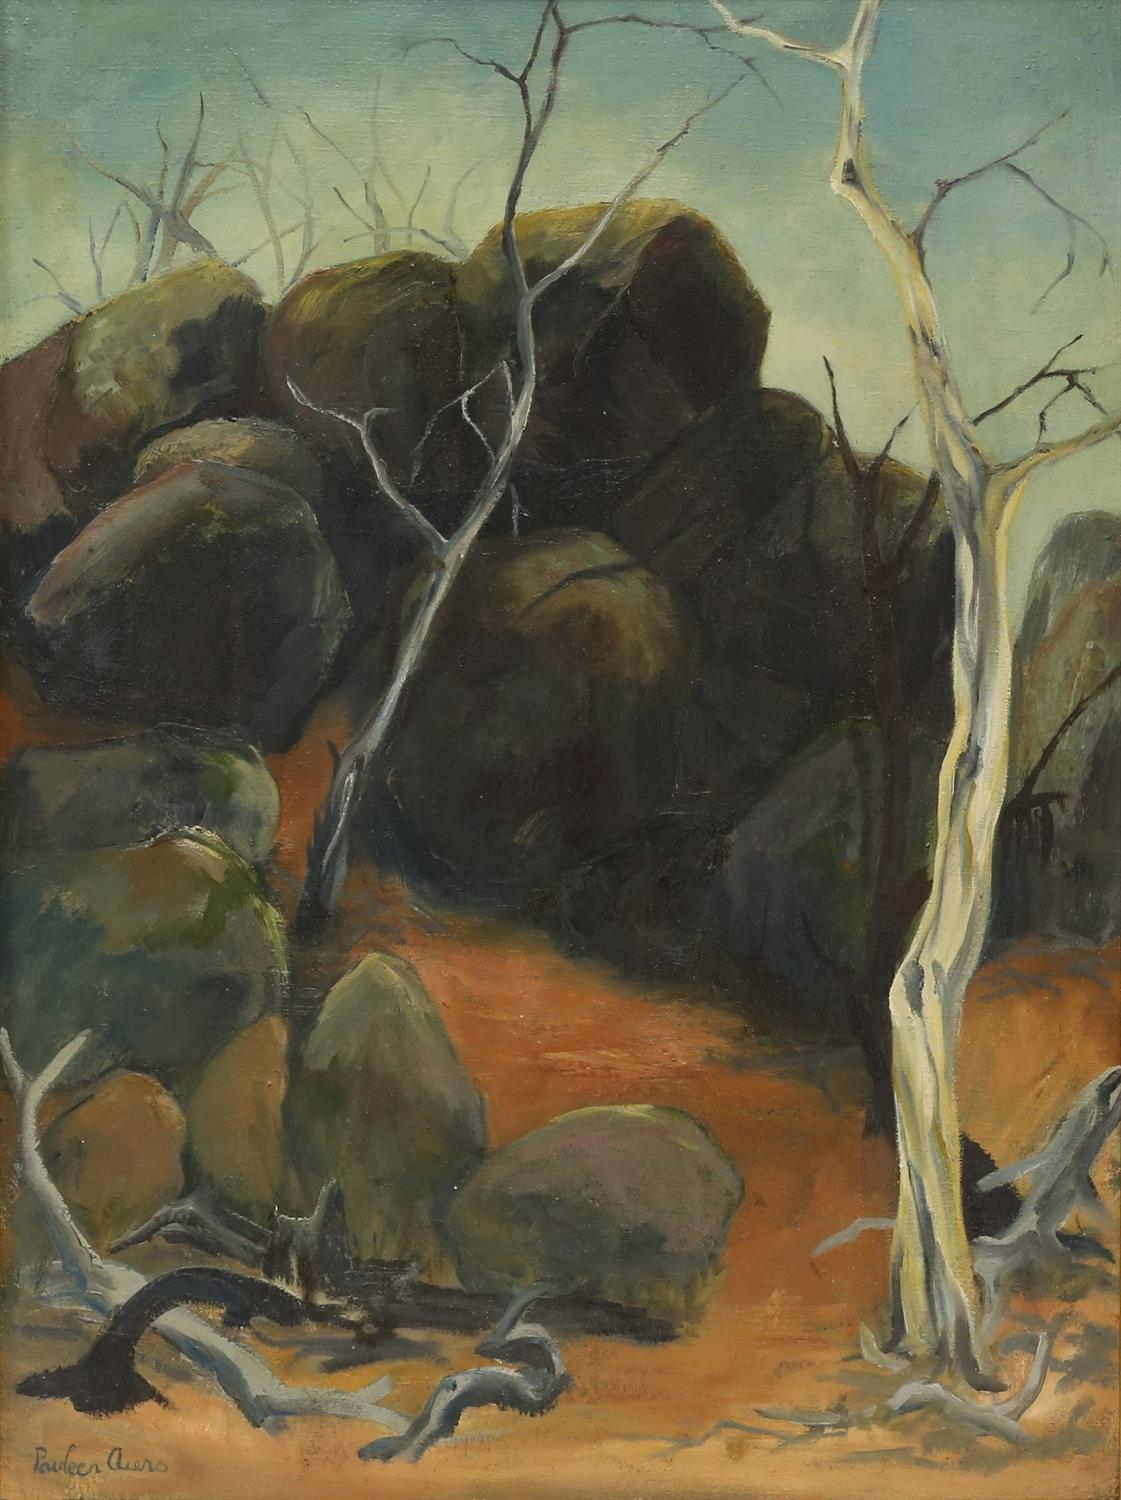 Pauleen Aiers (20th century) Rocky Gully, Gudgenby NSW. Oil on canvas, signed lower left,